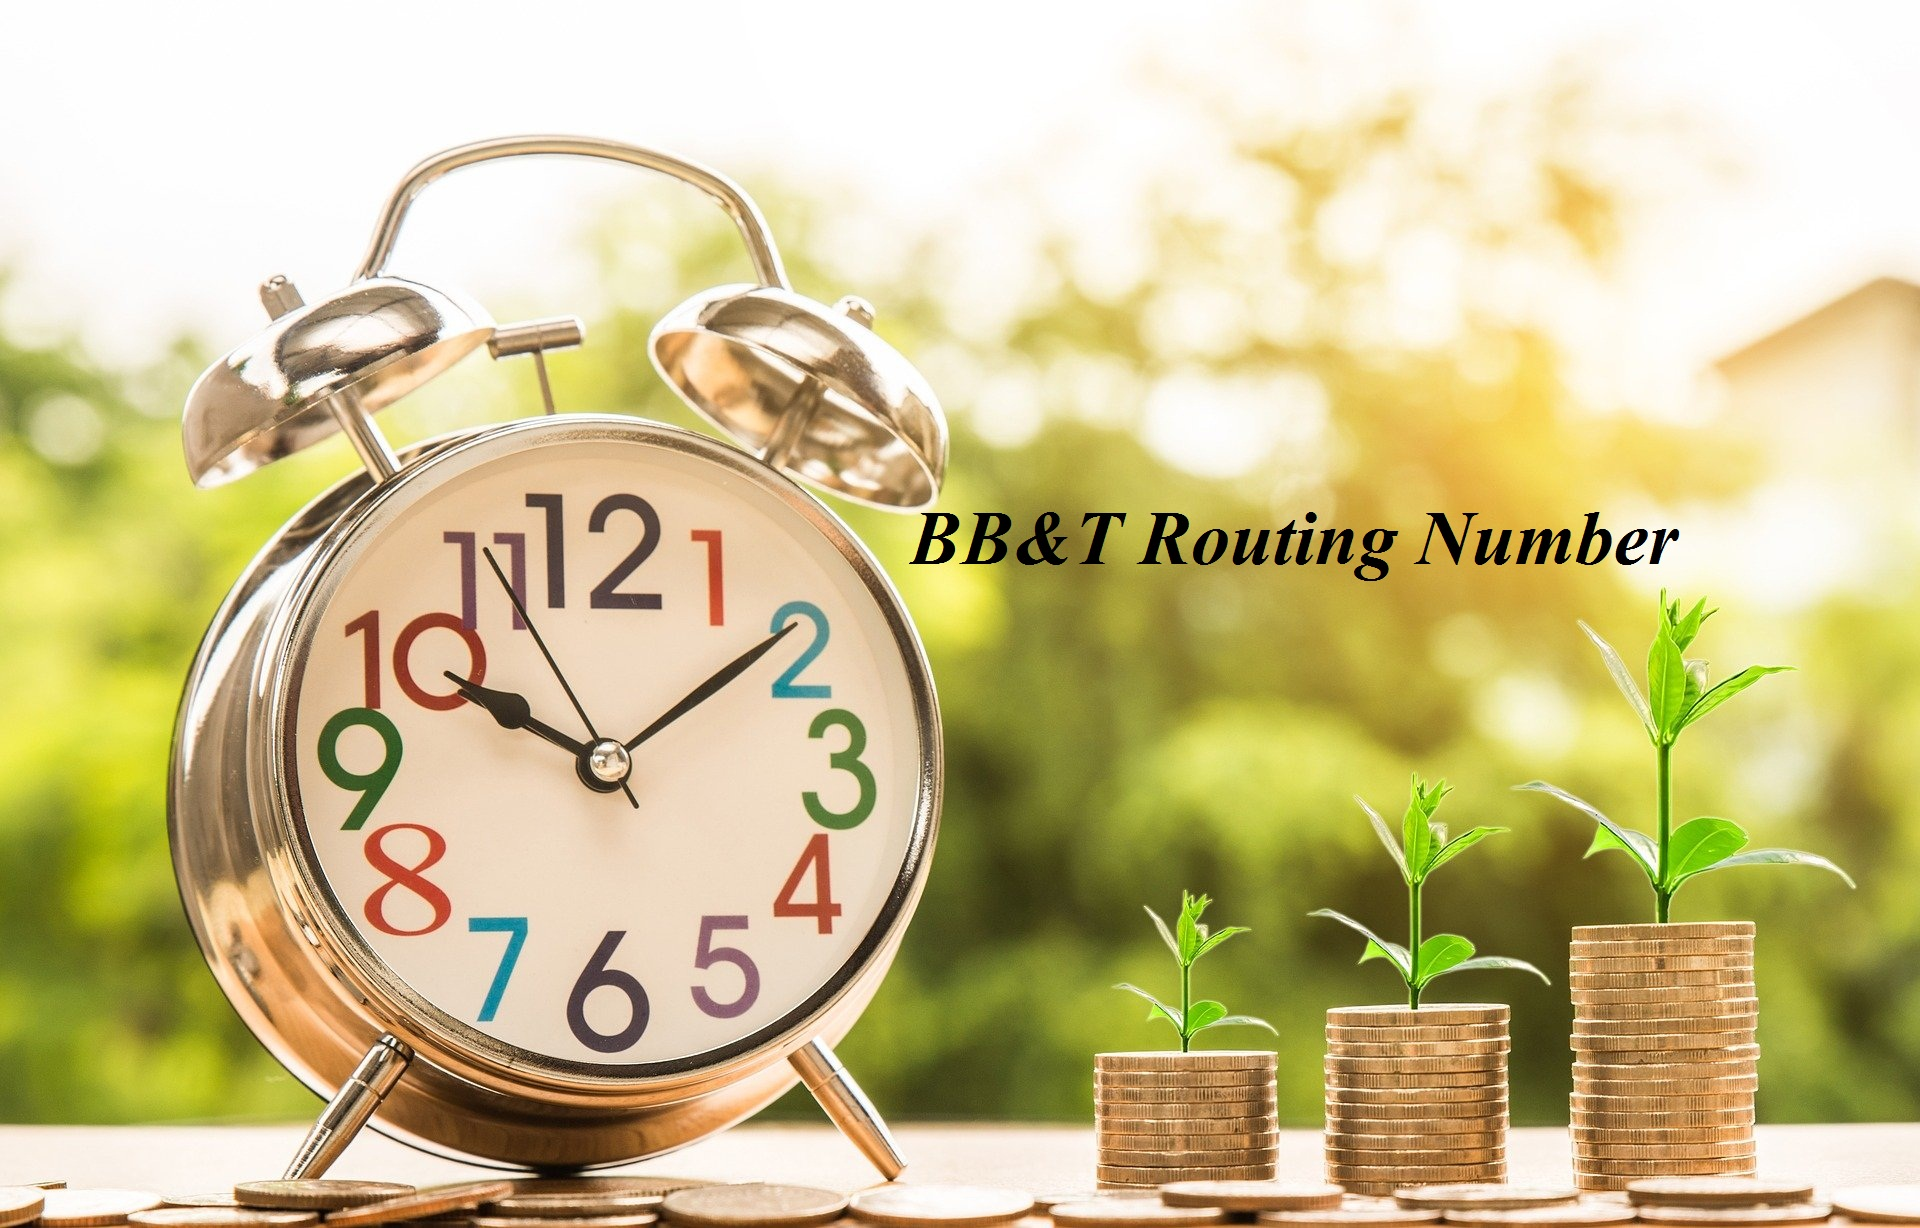 BB&T Routing Number